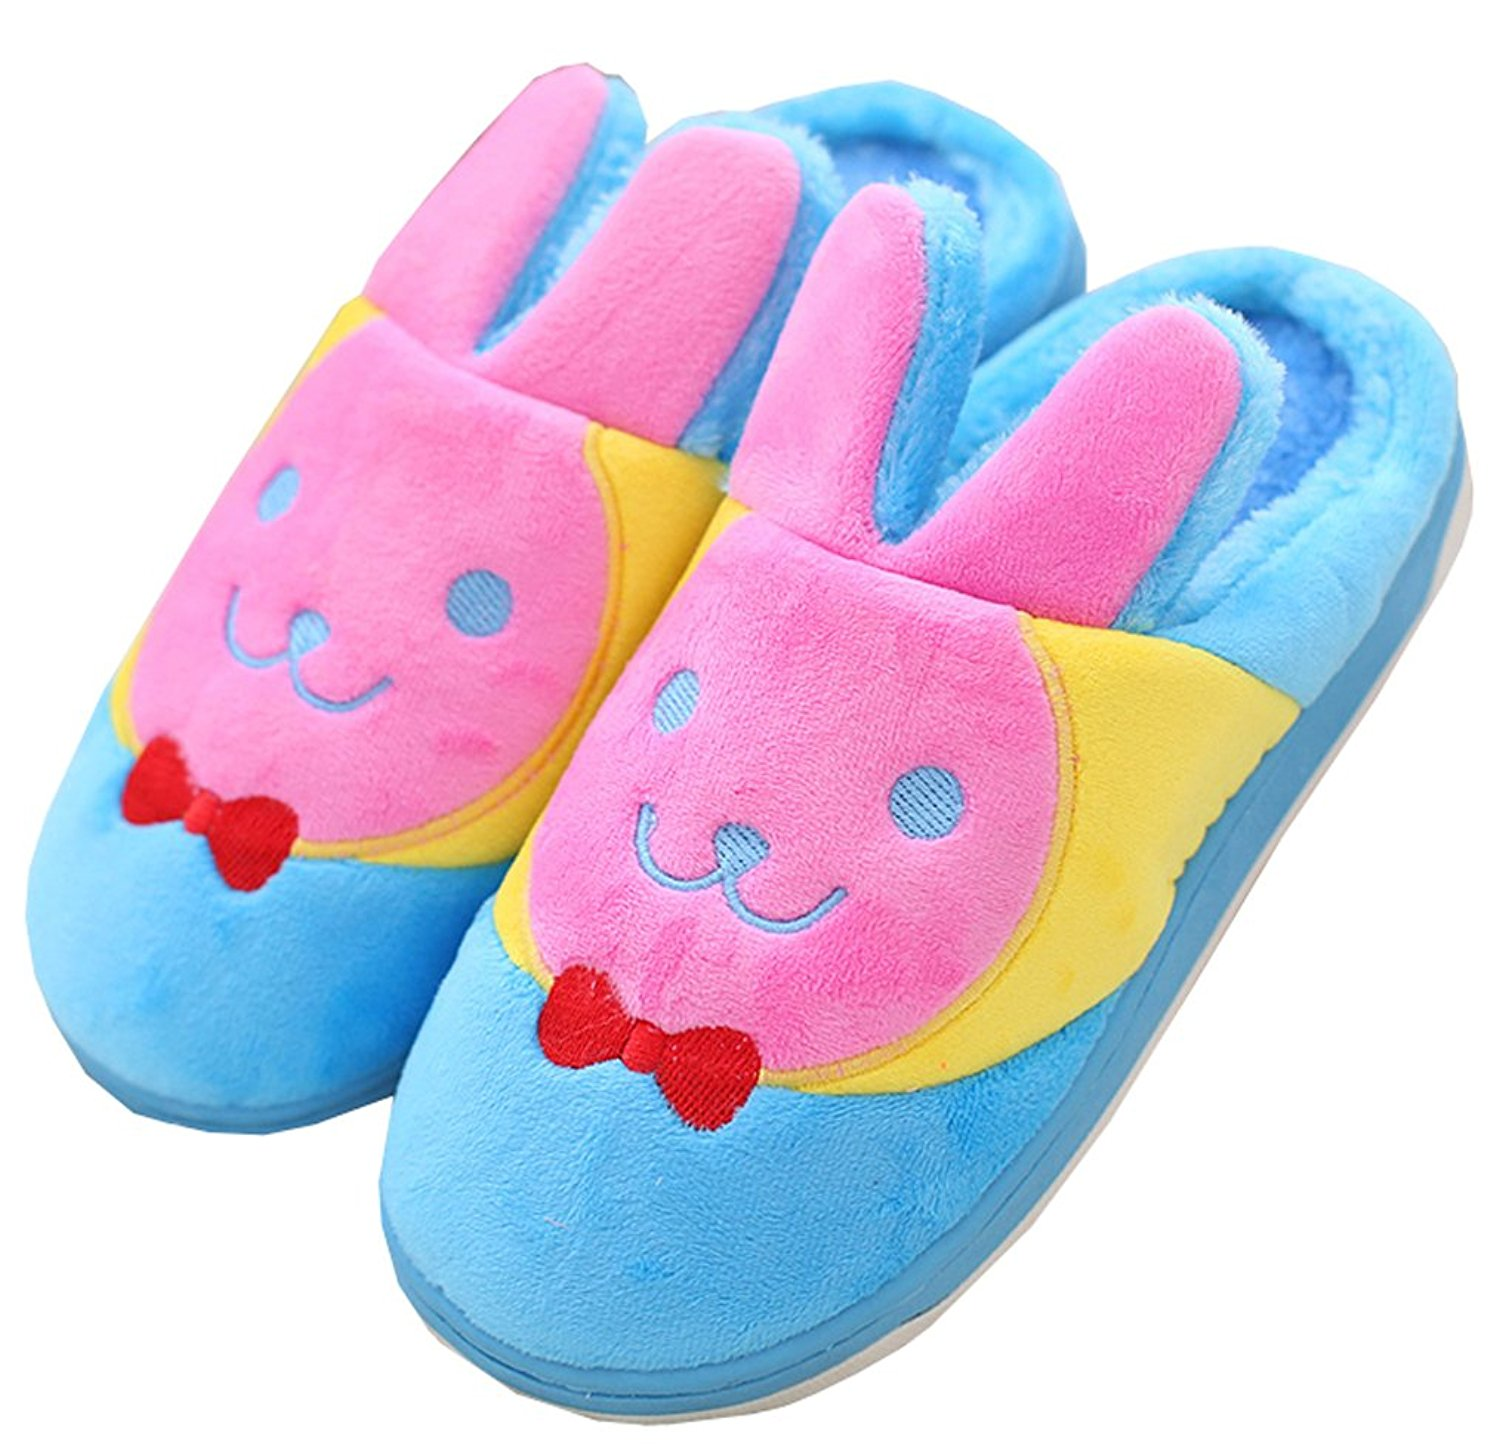 6b4f65a739c Get Quotations · Blubi Womens Bunny Plush Warm Slippers Cute Indoor Slippers  with Thick Sole